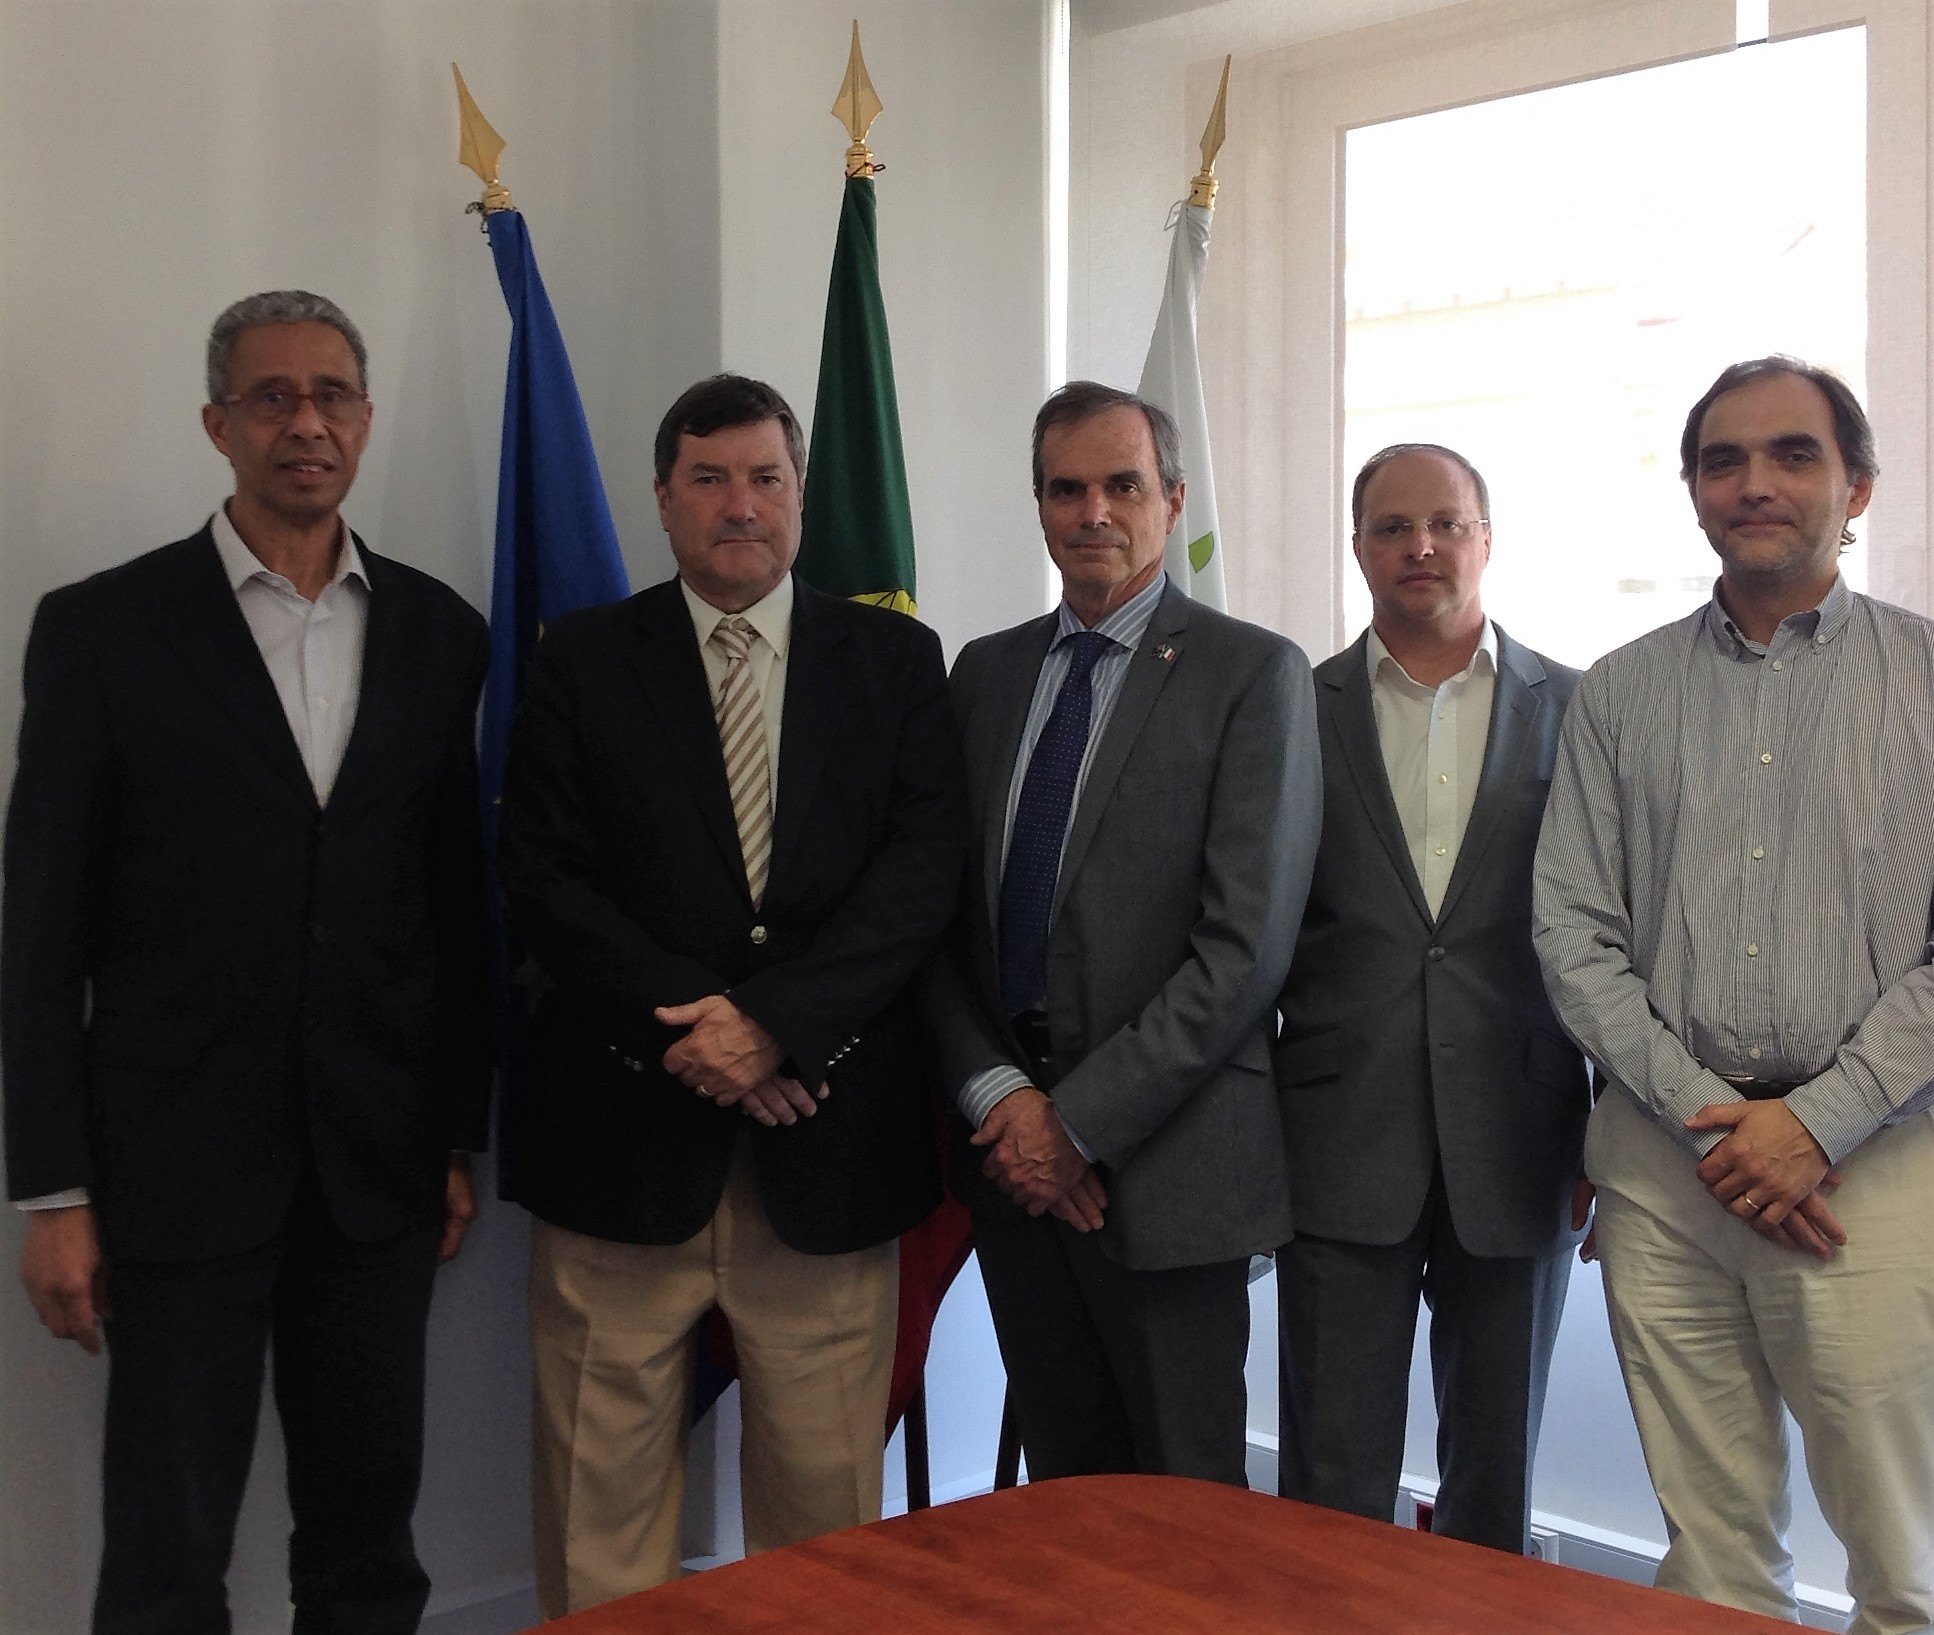 Warwick Forbes – Head of AIS Europe visita CAR do Jamor, Rio Maior e Montemor-o-Velho